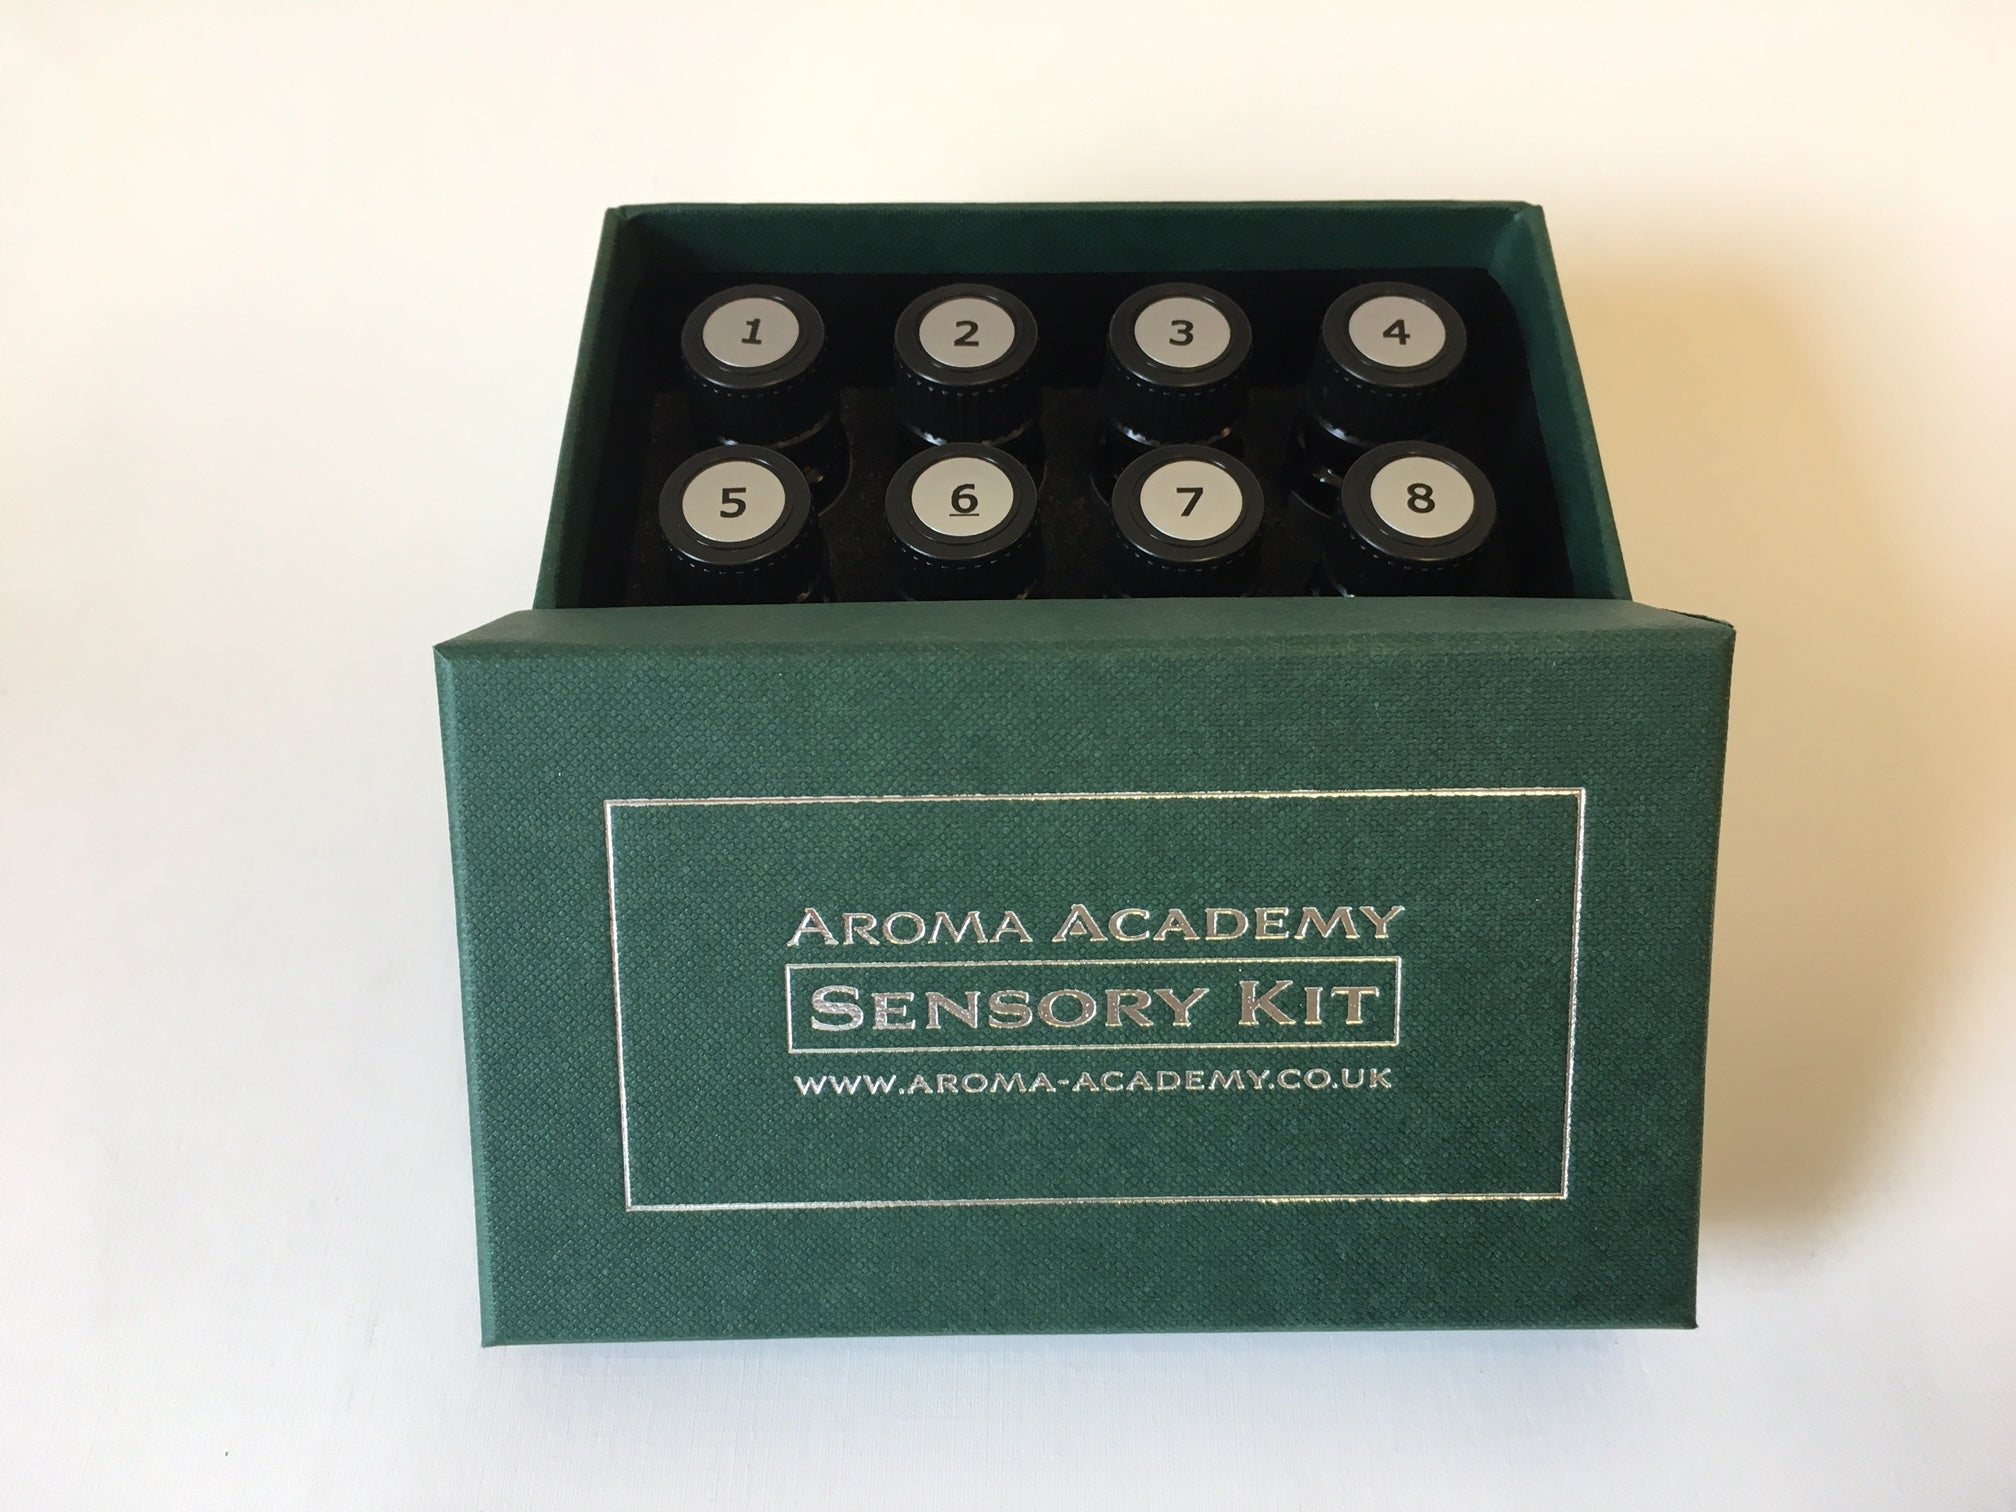 Sensory Testing Training Kit Competency Testing Spirits Whisky Wine Aroma Academy